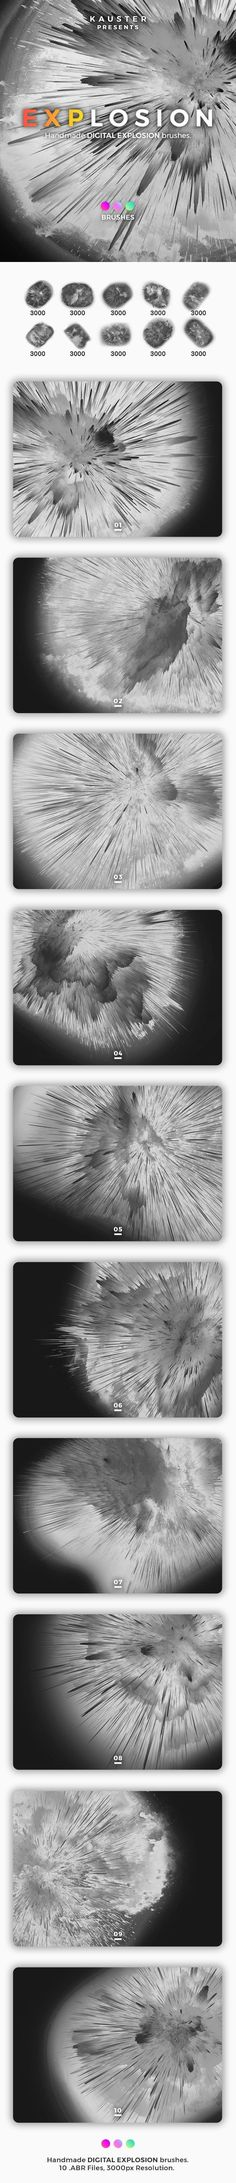 Buy Digital Explosion Brushes by kauster- on GraphicRiver. Digital Explosion Brushes This pack includes 10 Digital Explosion Brushes. Suitable for printing, web design, banner. Photoshop Brushes, Psychedelic, Web Design, Banner, Display, Abstract, Wallpaper, Digital, Prints